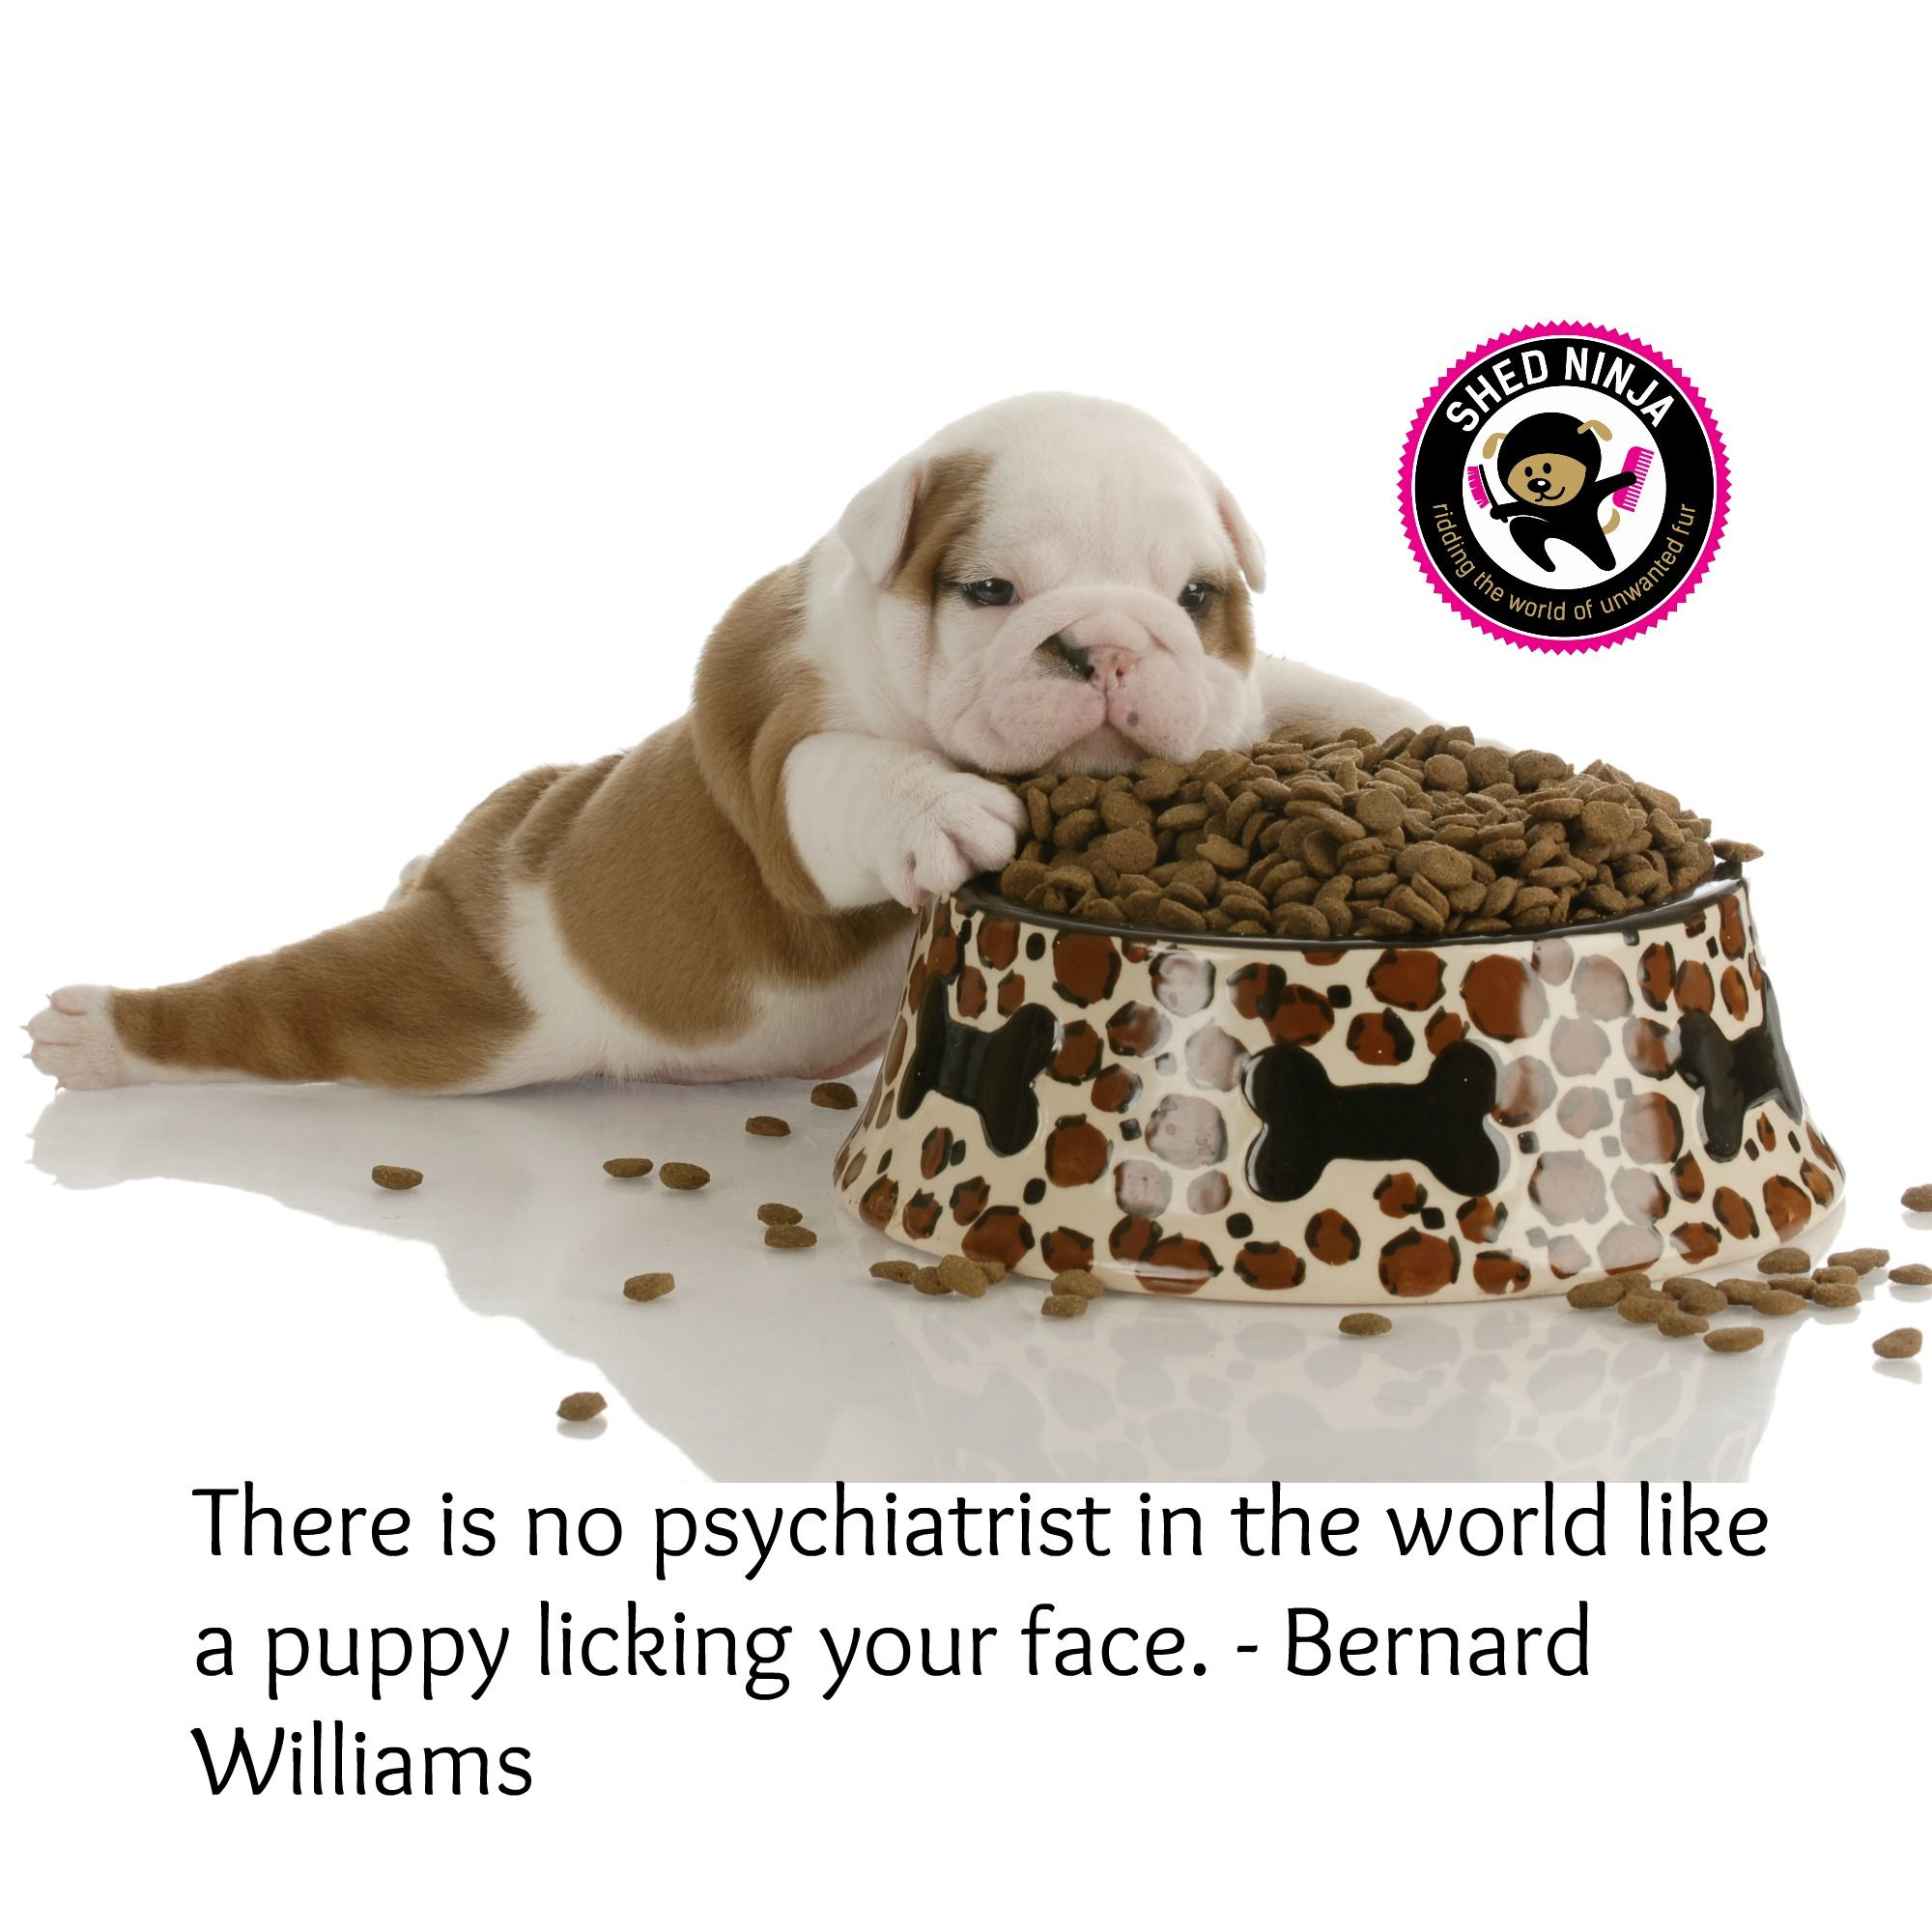 There Is No Psychiatrist In The World Like A Puppy Licking Your